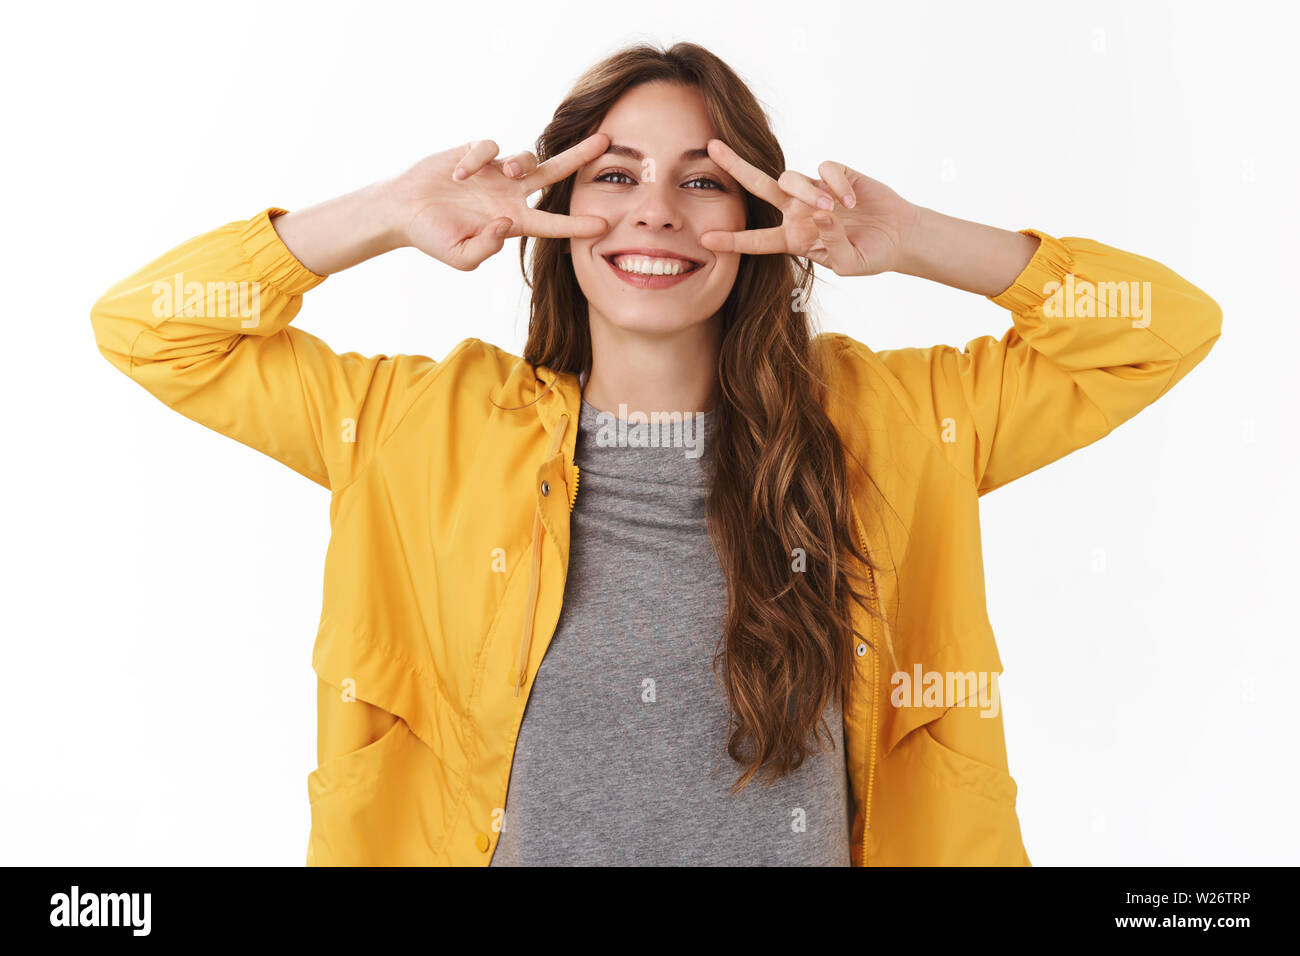 Positive minds healthy body. Bright lucky carefree gorgeous caucasian girl smiling broadly toothy grin show peace victory signs near eyes express upbe - Stock Image